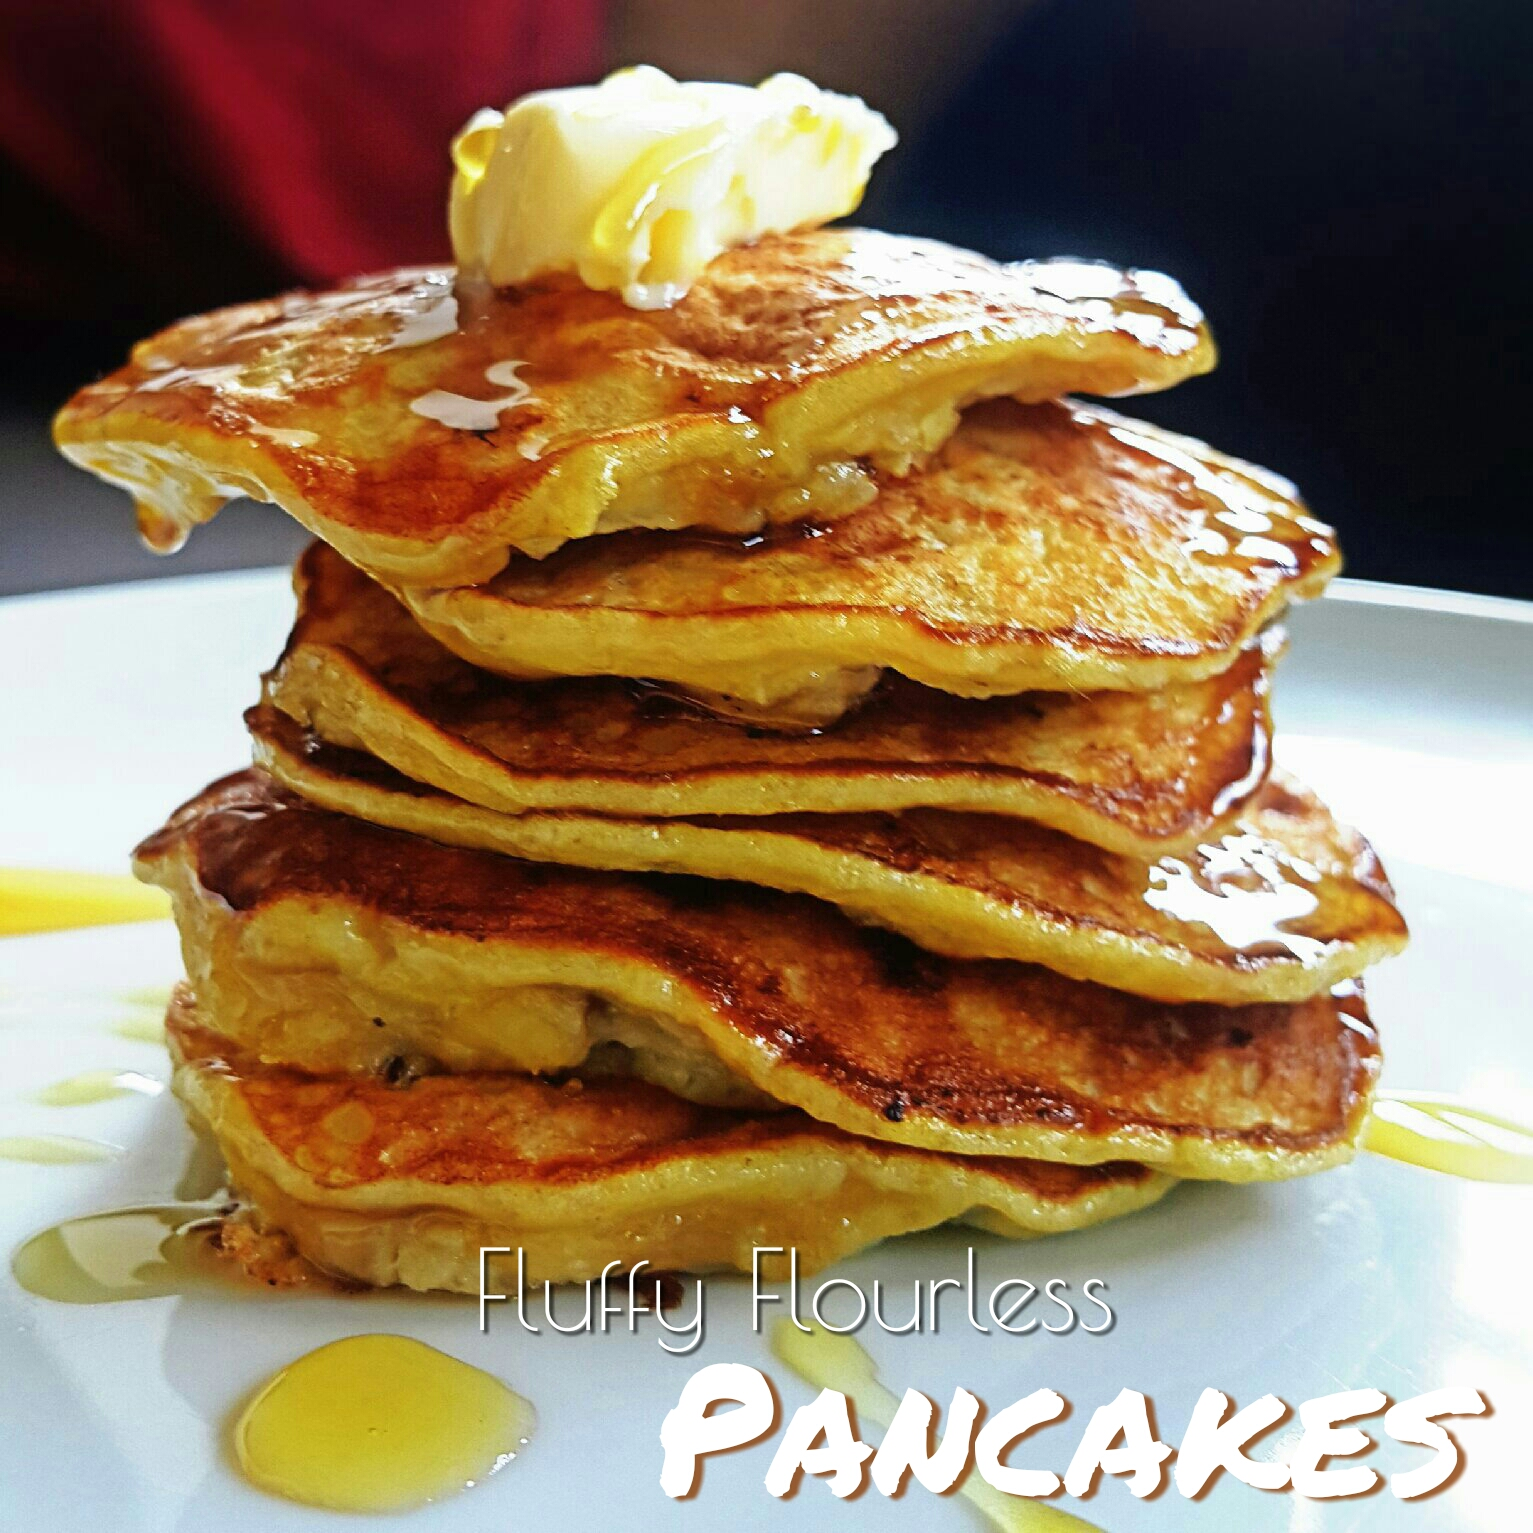 10mins Gluten-free Breakfast: Healthy Fluffy Flour-less Pancakes